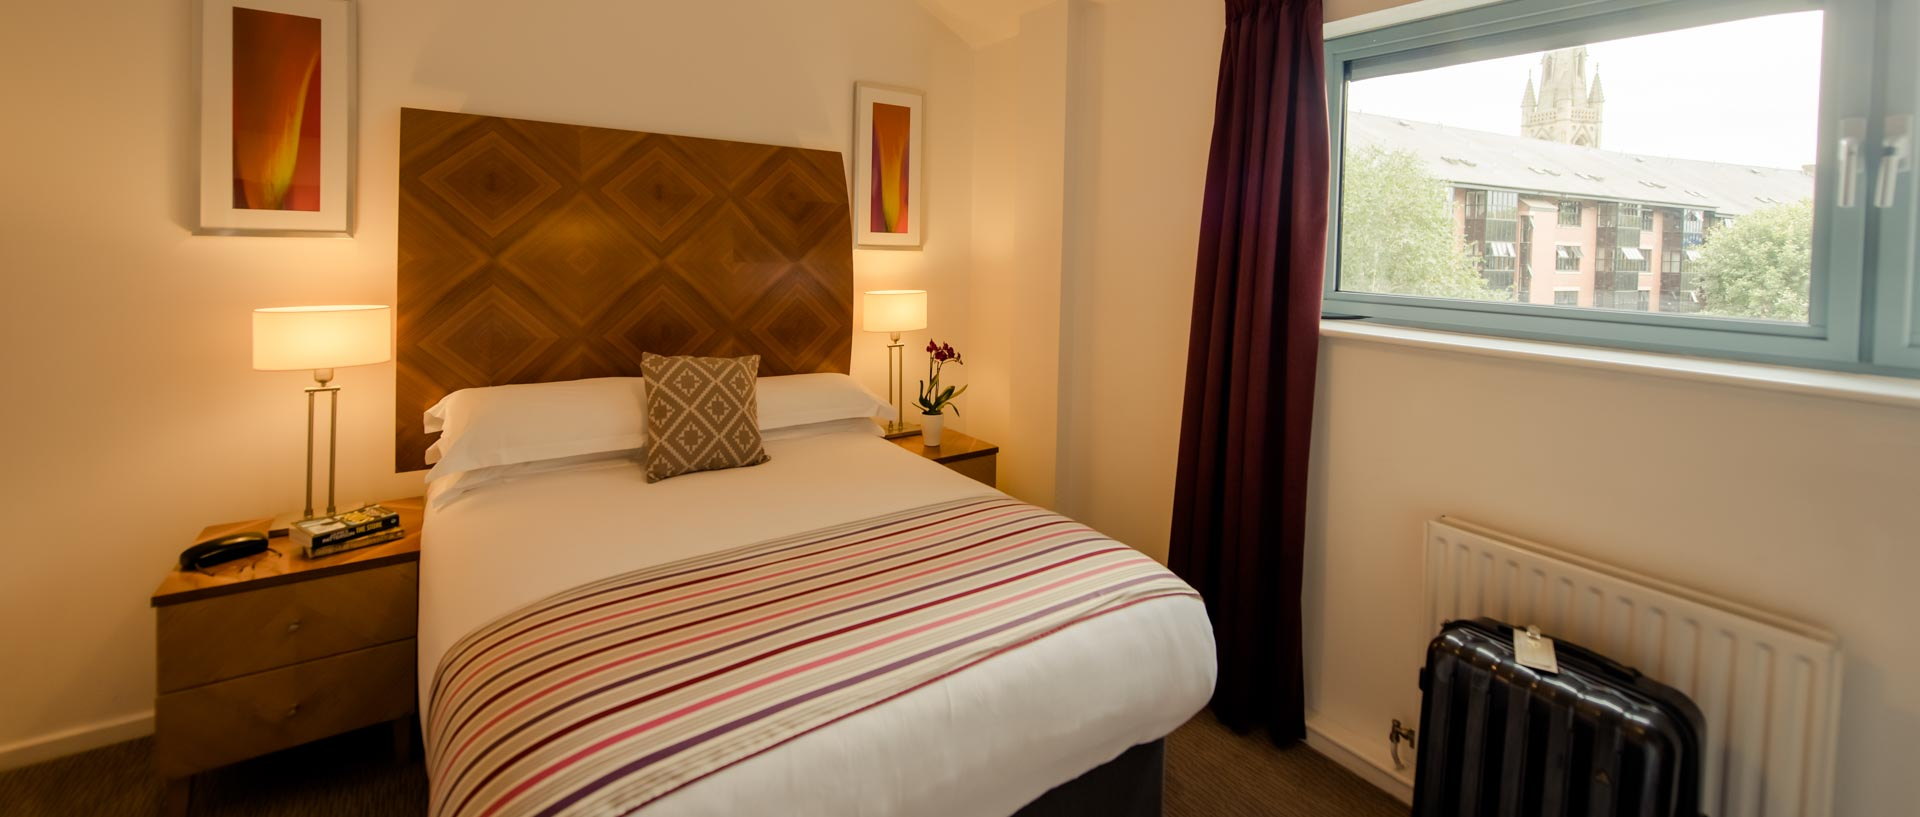 Luxury double bed at PREMIER SUITES Newcastle